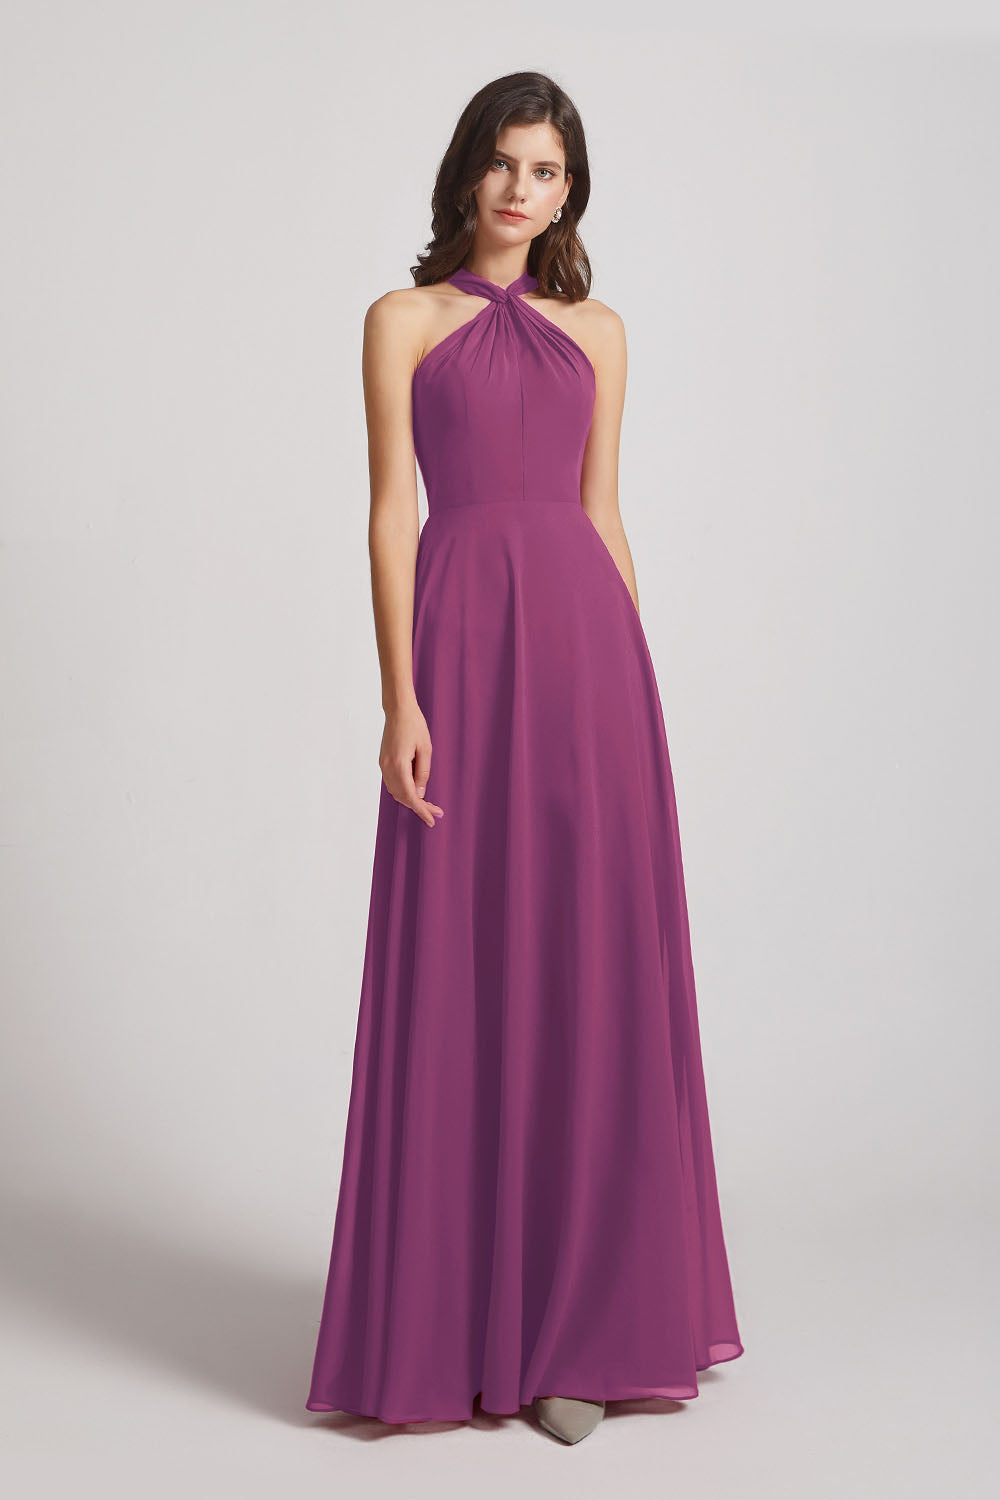 Alfa Bridal Wild Berry Floor Length Chiffon Bridesmaid Dresses with Criss Cross Neckline (AF0113)